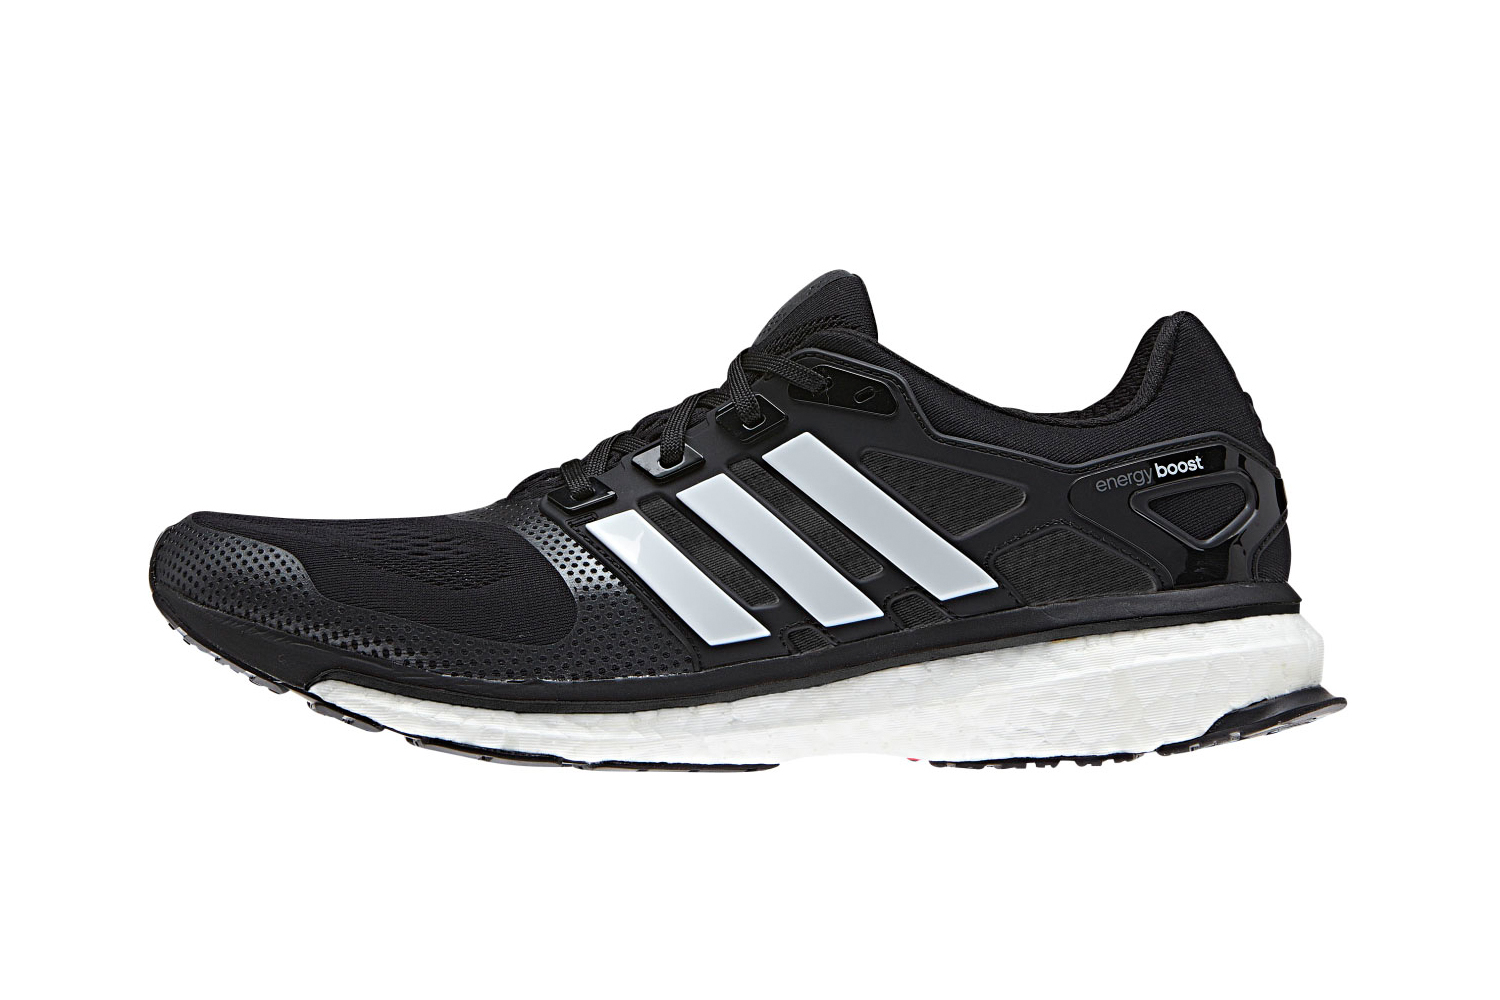 adidas Running Debuts the New Energy Boost 2.0